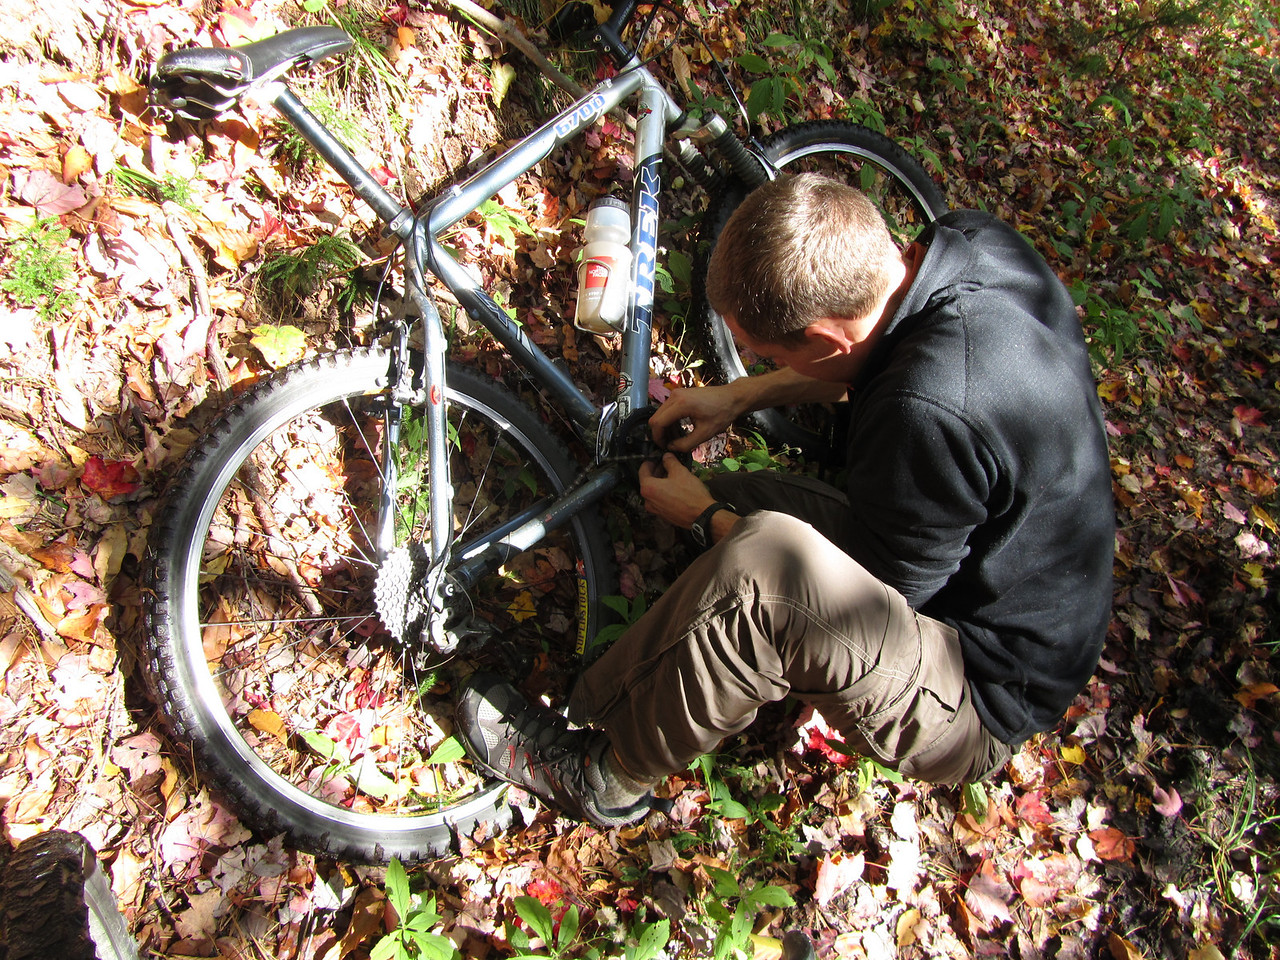 Not more than 5 minutes into the trip and Kevin broke his chain in 2 places. Fortunately, he had some repair equipment as I had none.